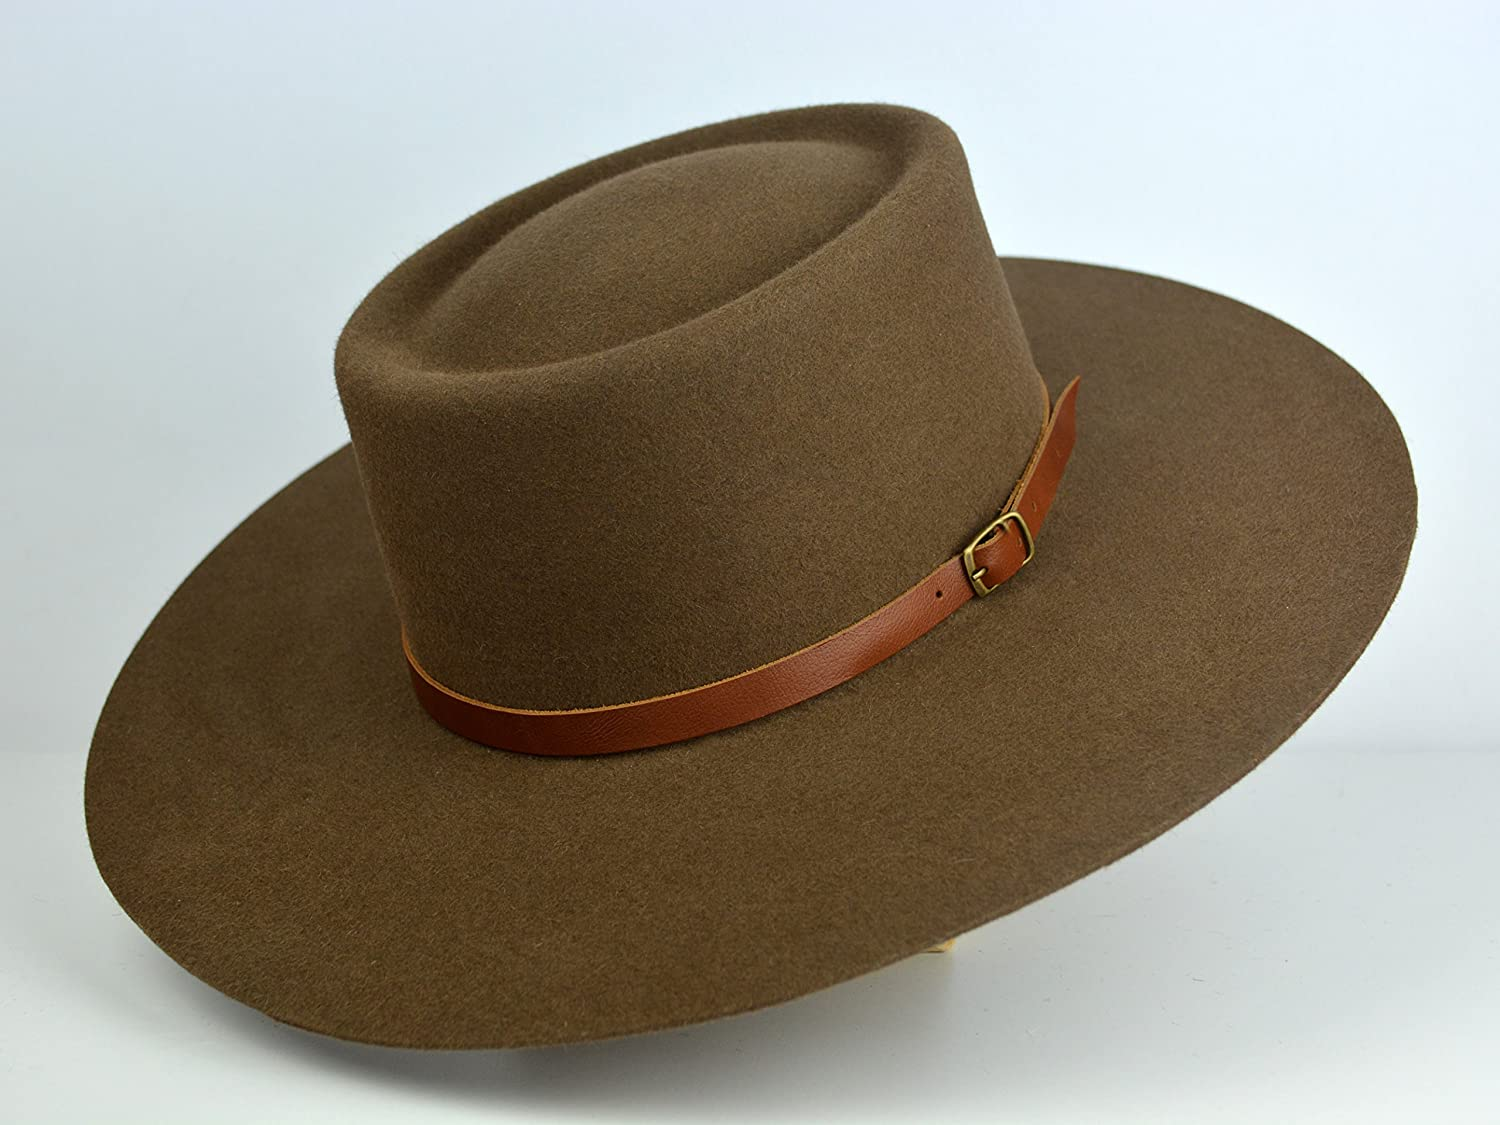 The Mojave - Coffee Brown Rabbit Fur Felt Vaquero Crown Bolero Hat - Extra-wide Brim - Men Women